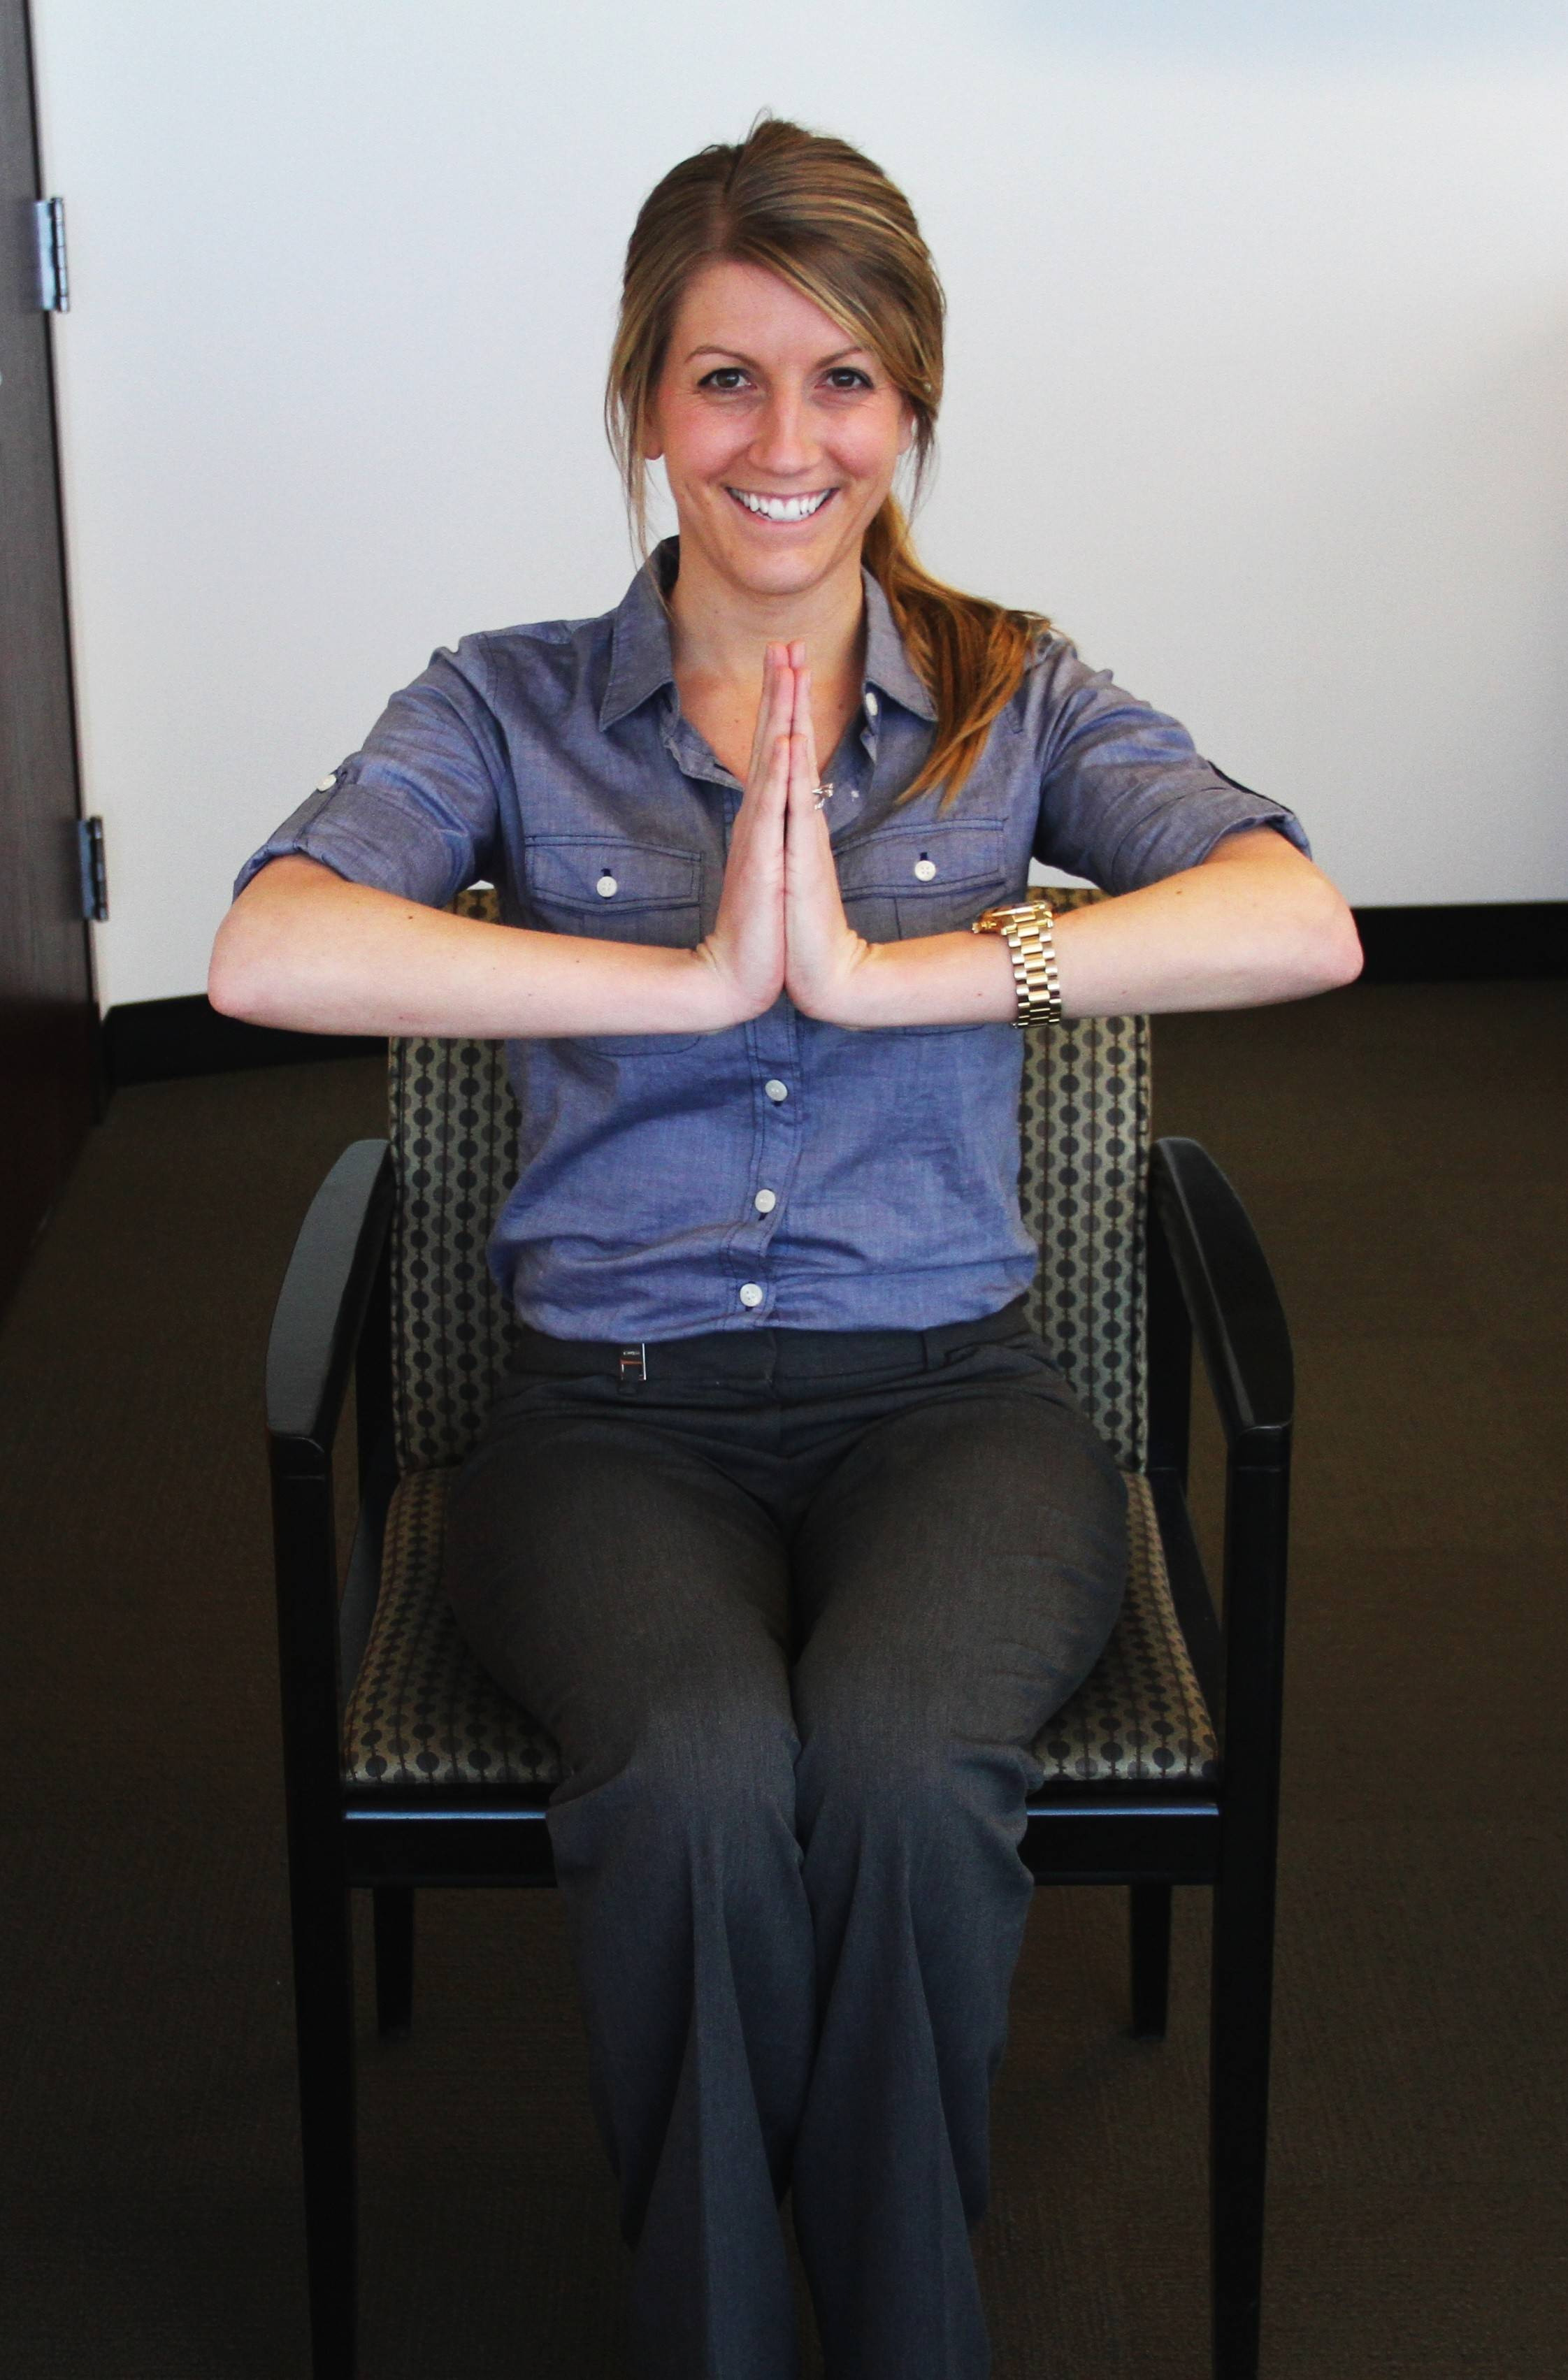 Jill Micklow, Wellness Specialist at Assurance, demonstrates an at-work yoga pose that works your mind and your arms.